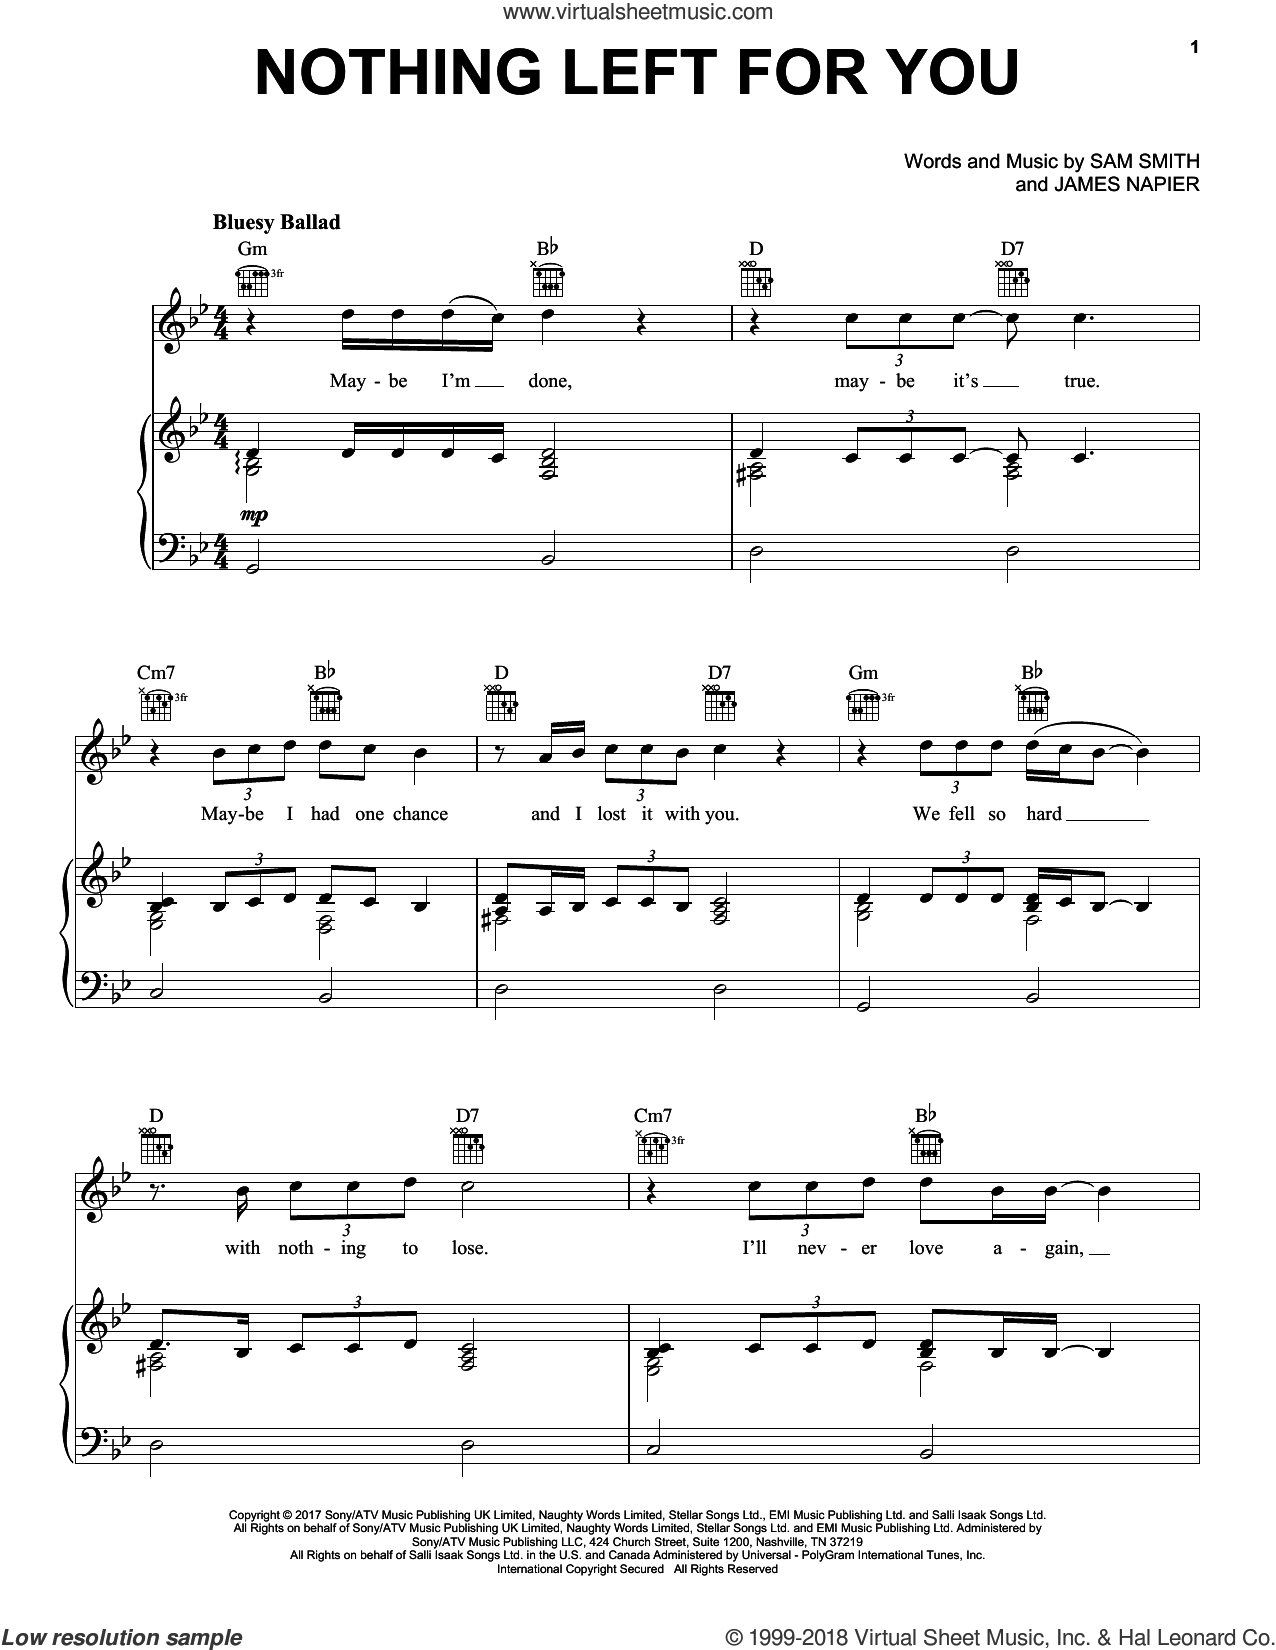 Nothing Left For You sheet music for voice, piano or guitar by Sam Smith and James Napier, intermediate skill level